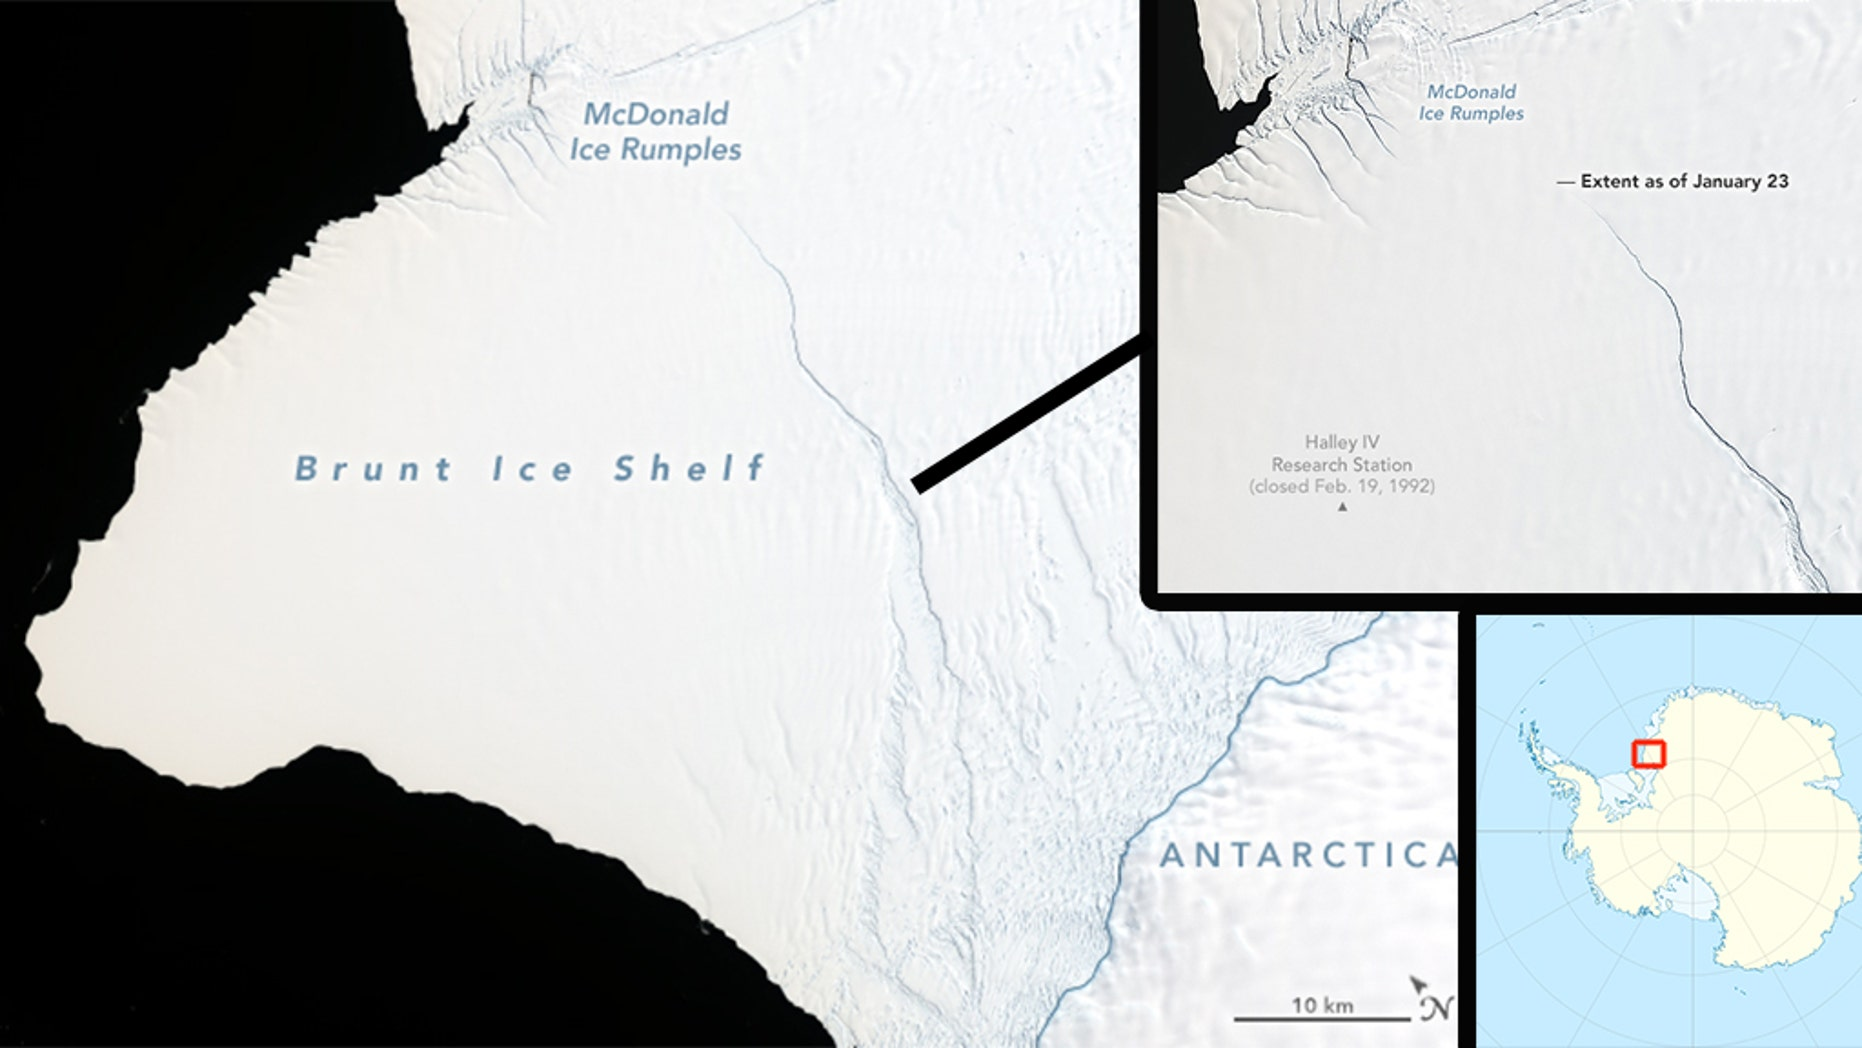 NASA scientists are observing the Brunt Ice Shelf in Antarctica, where they expect an iceberg around twice the size of New York City to soon break off.